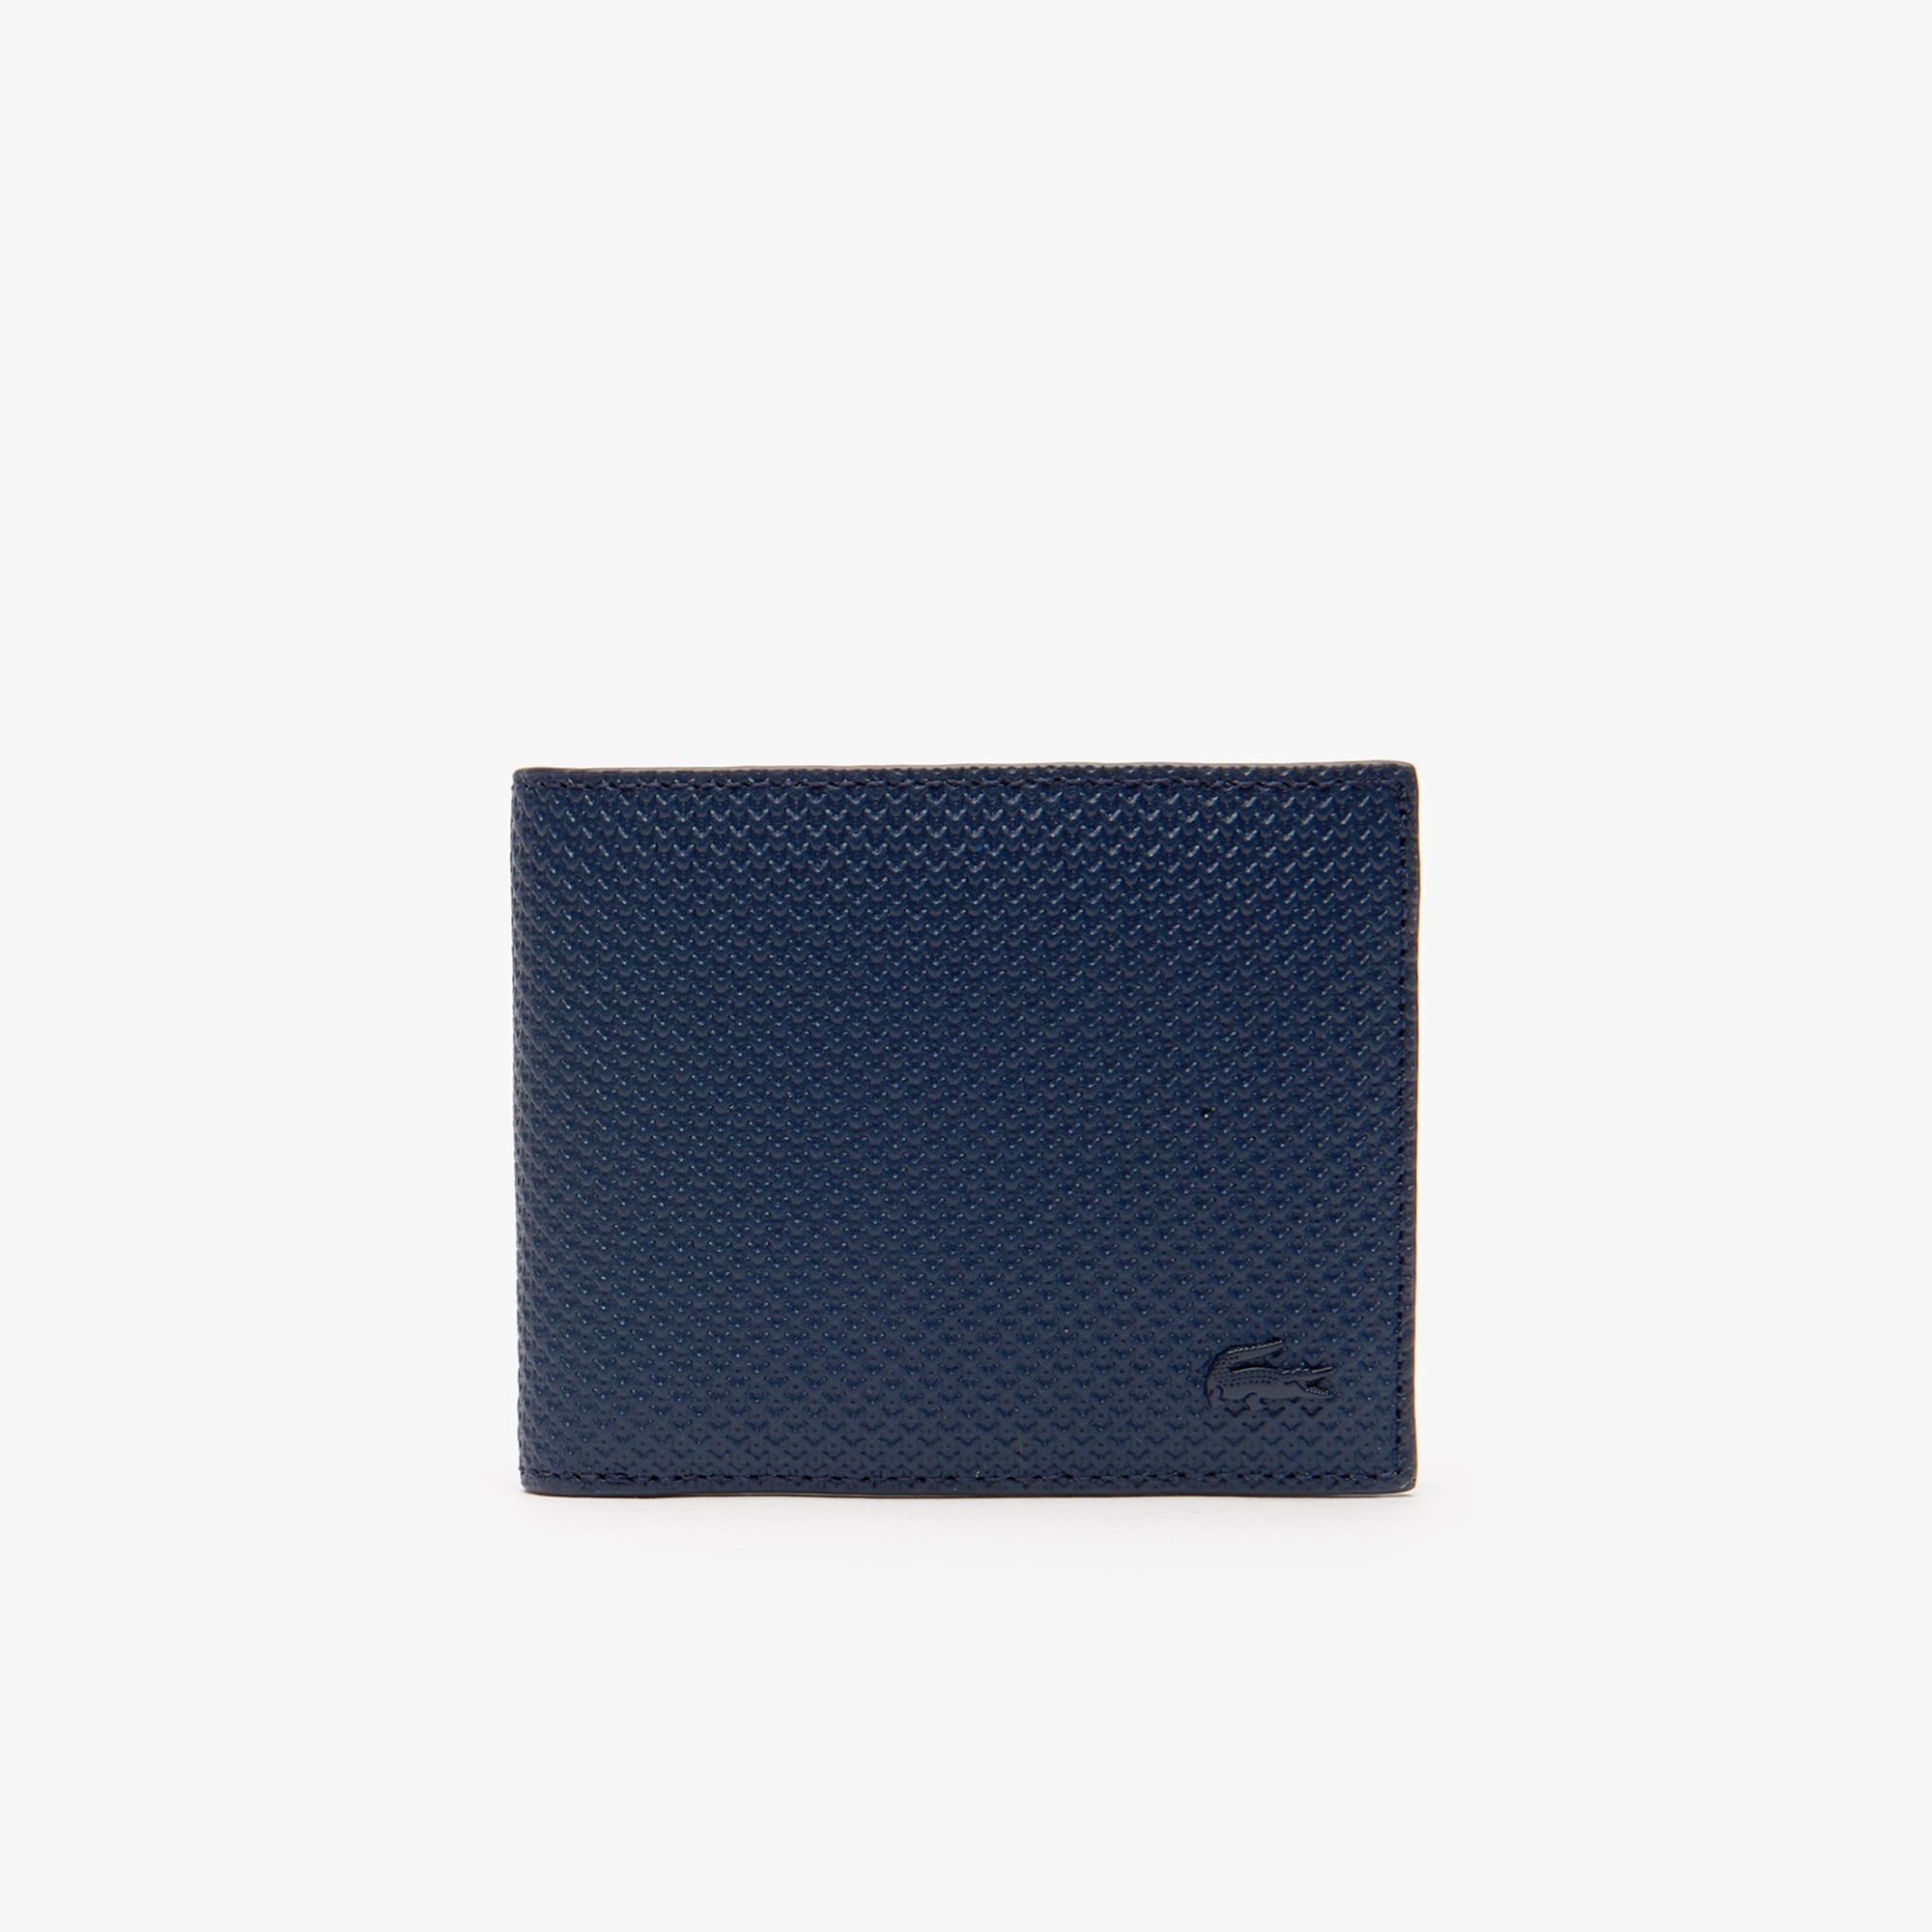 Men's Chantaco Piqué Leather 3 Card Wallet